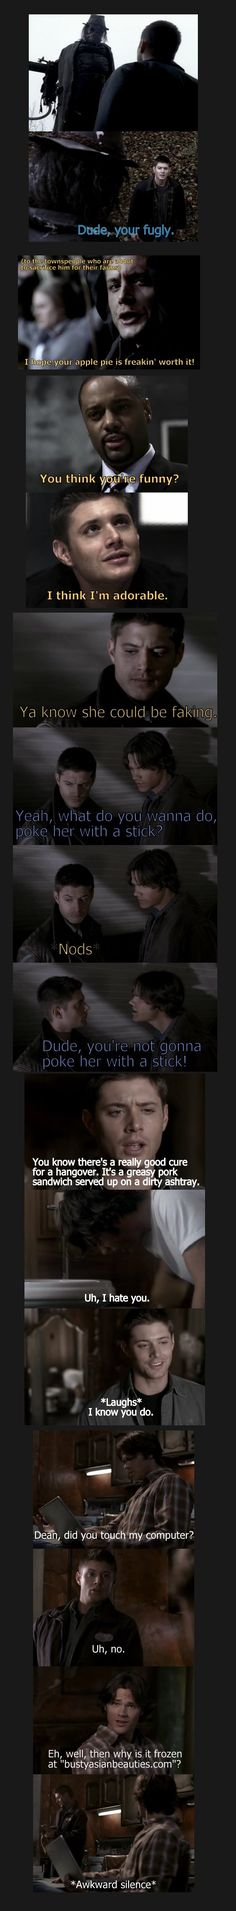 Dean Winchester Quotes :)) he is just hilarious :)))